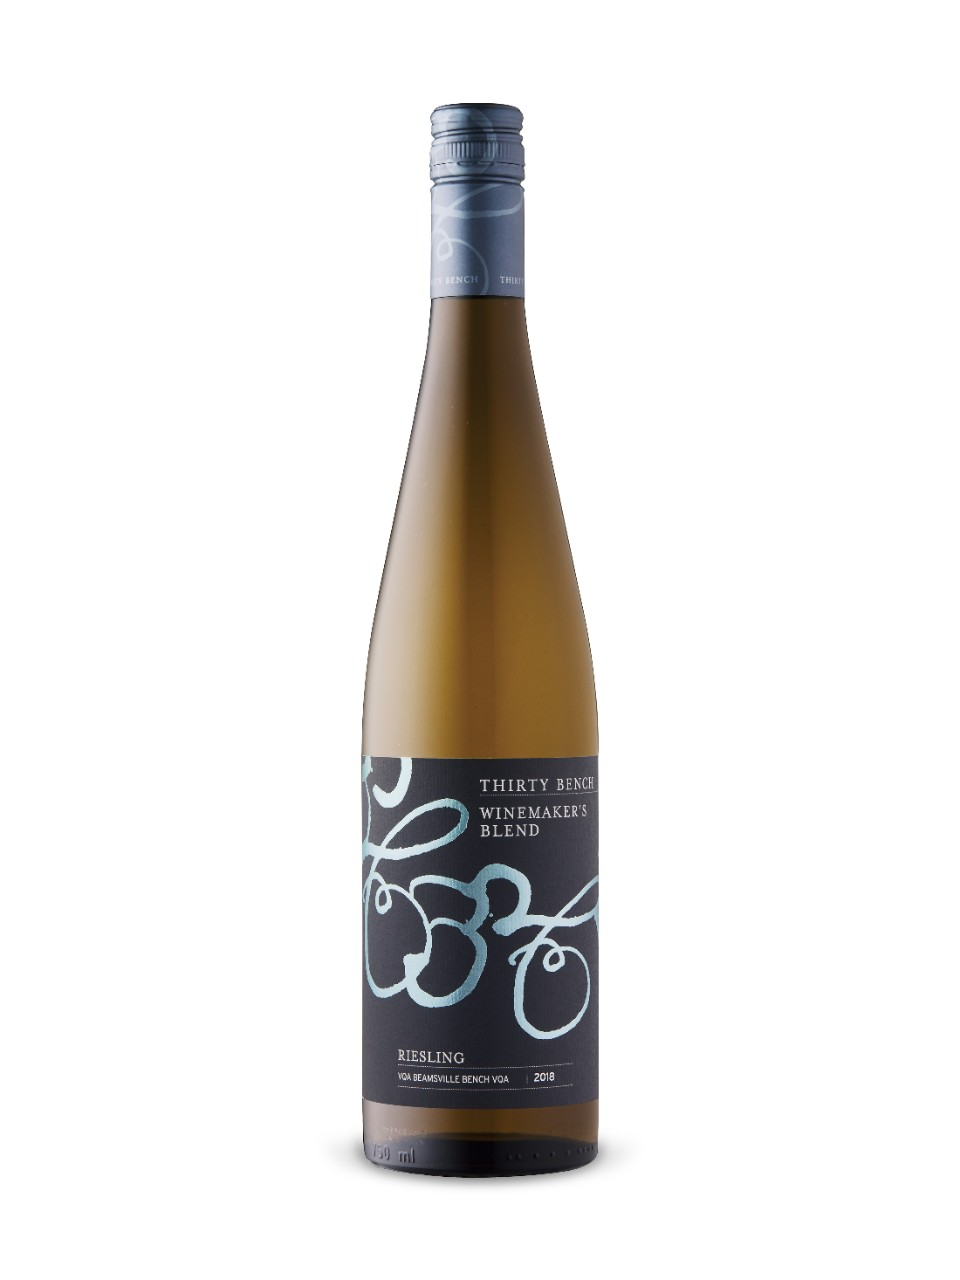 Thirty Bench Winemaker's Blend Riesling from LCBO